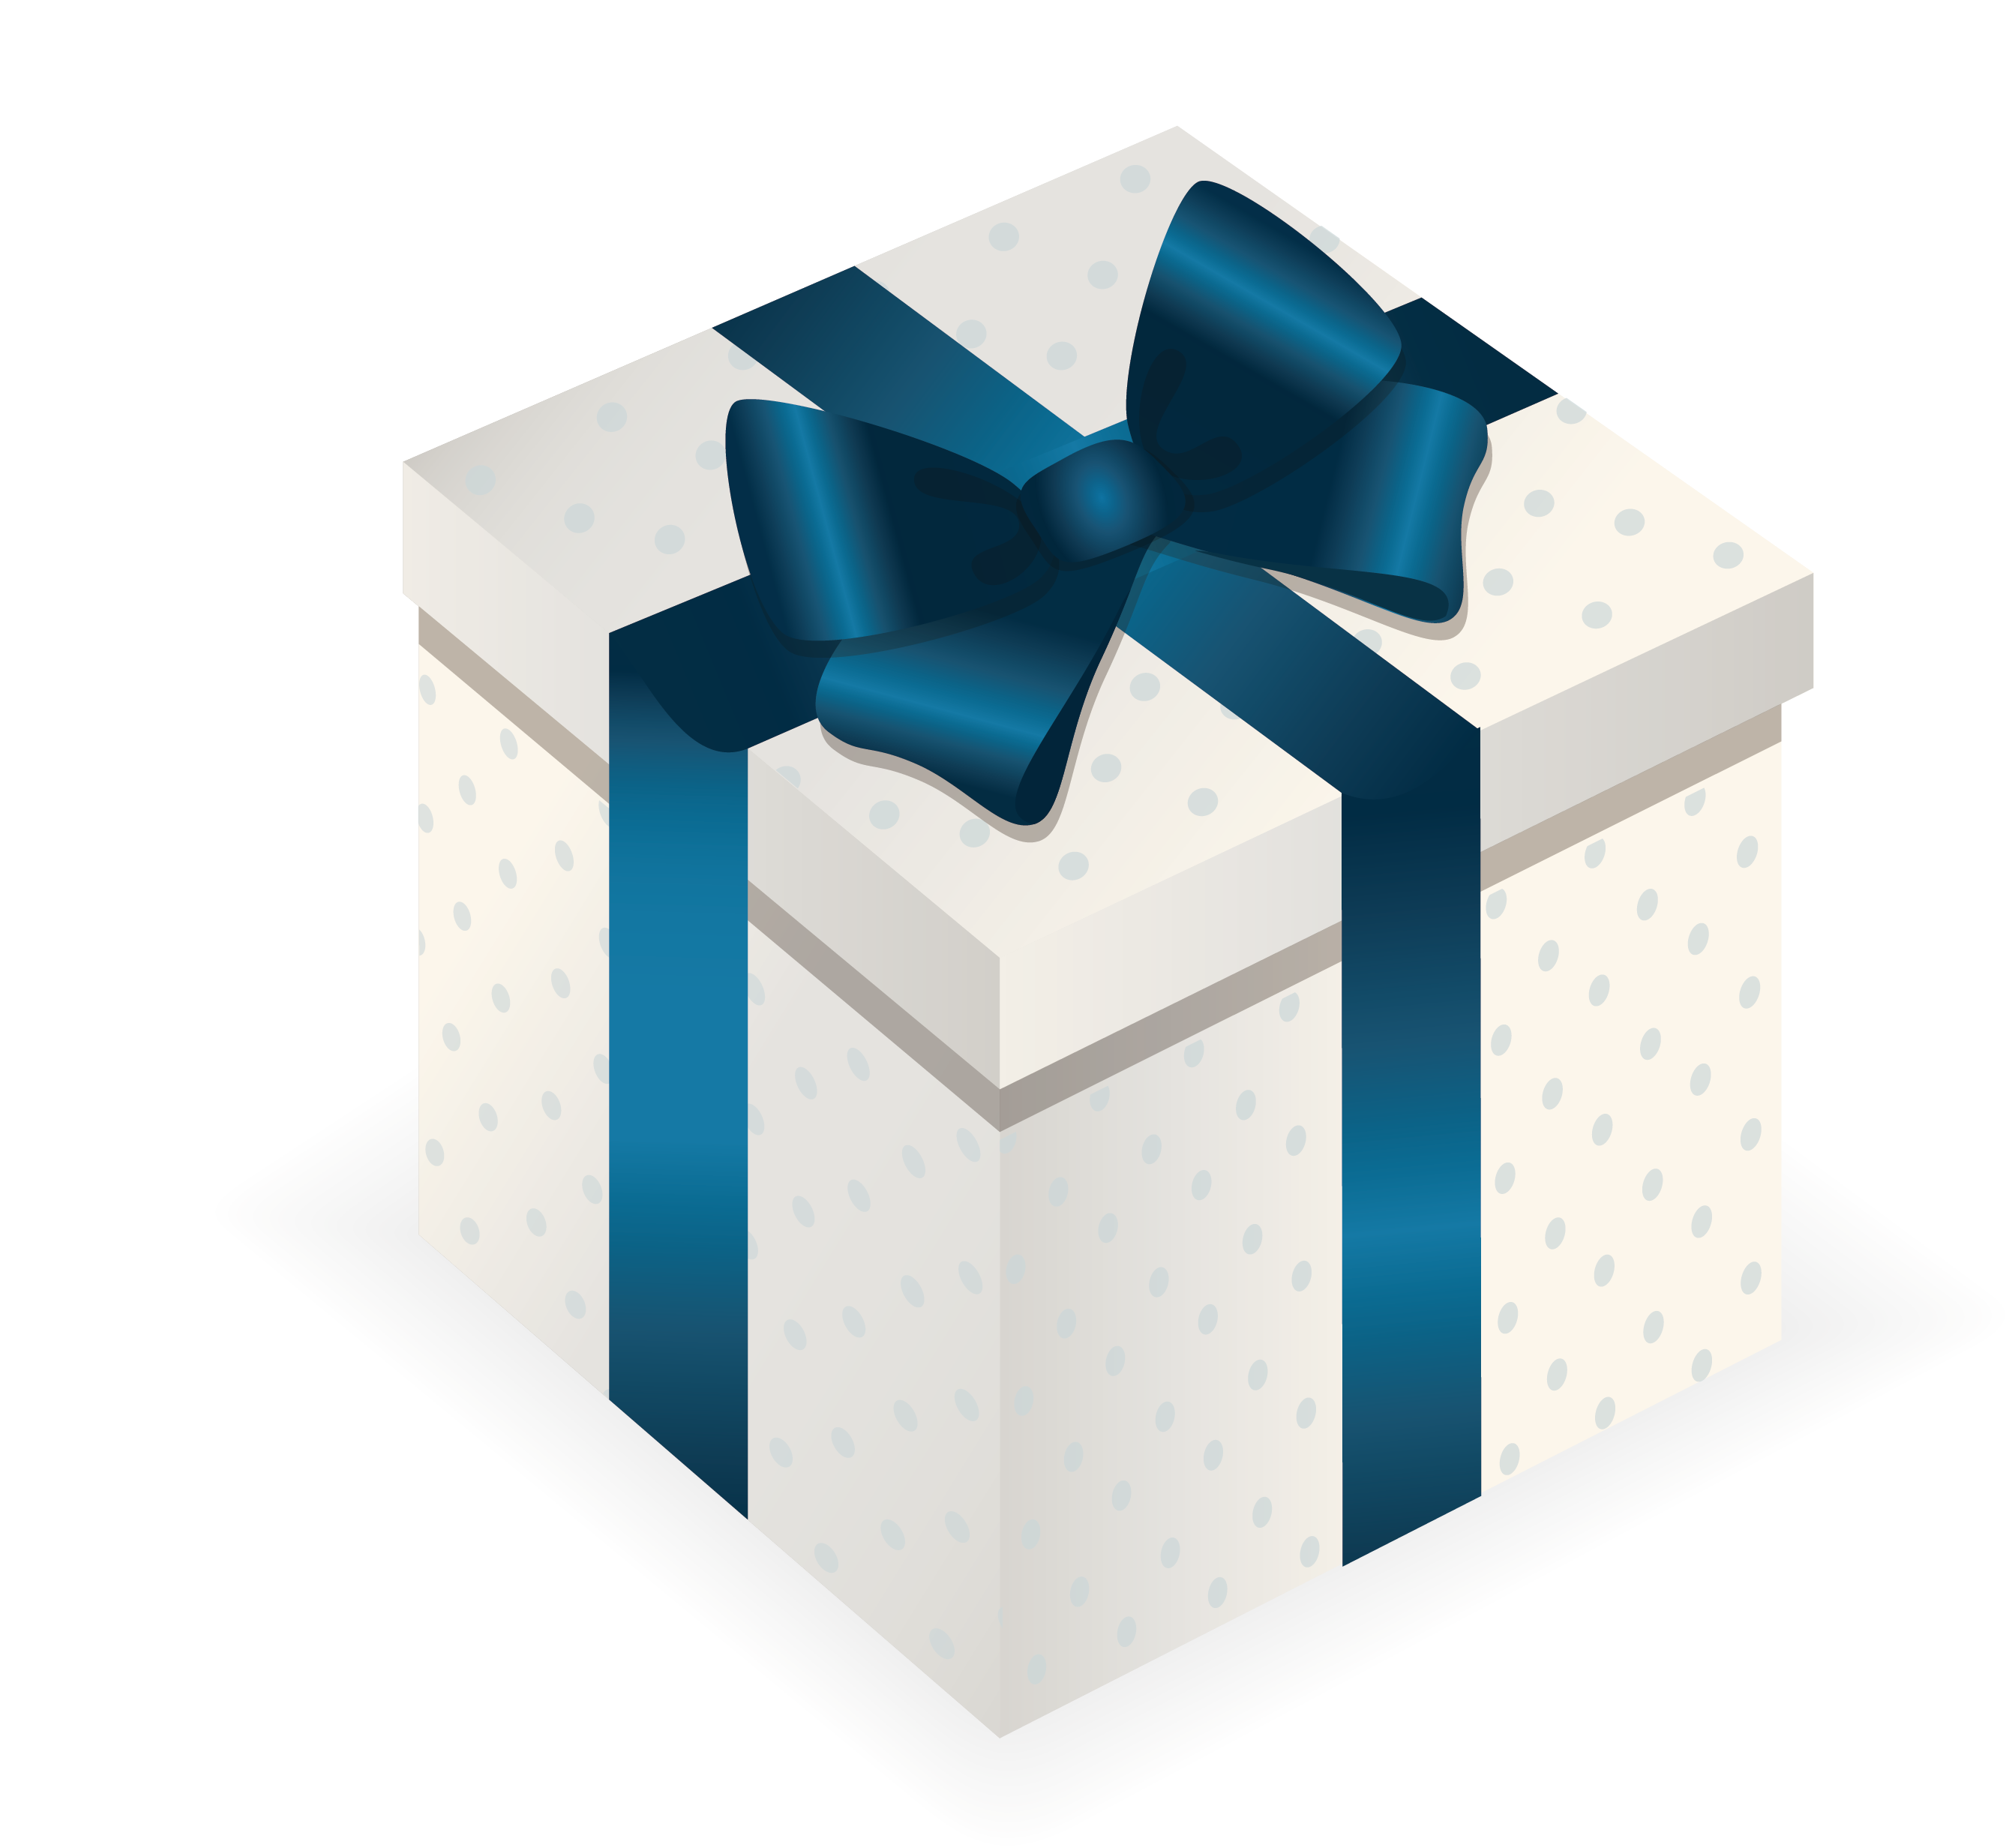 Blue gift box png. Christmas top view transprent